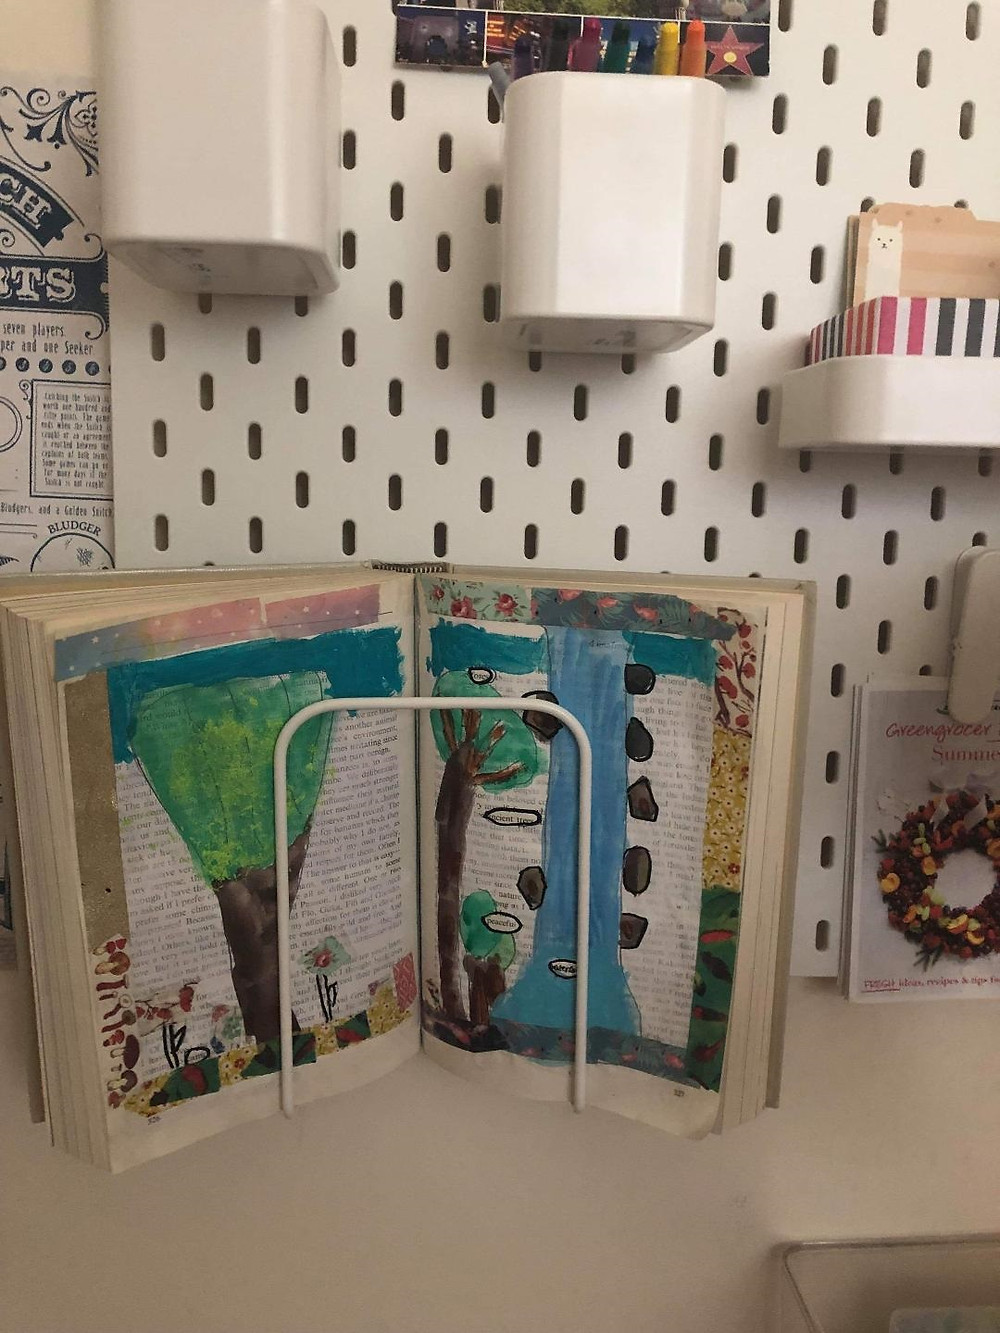 altered book on a peg board